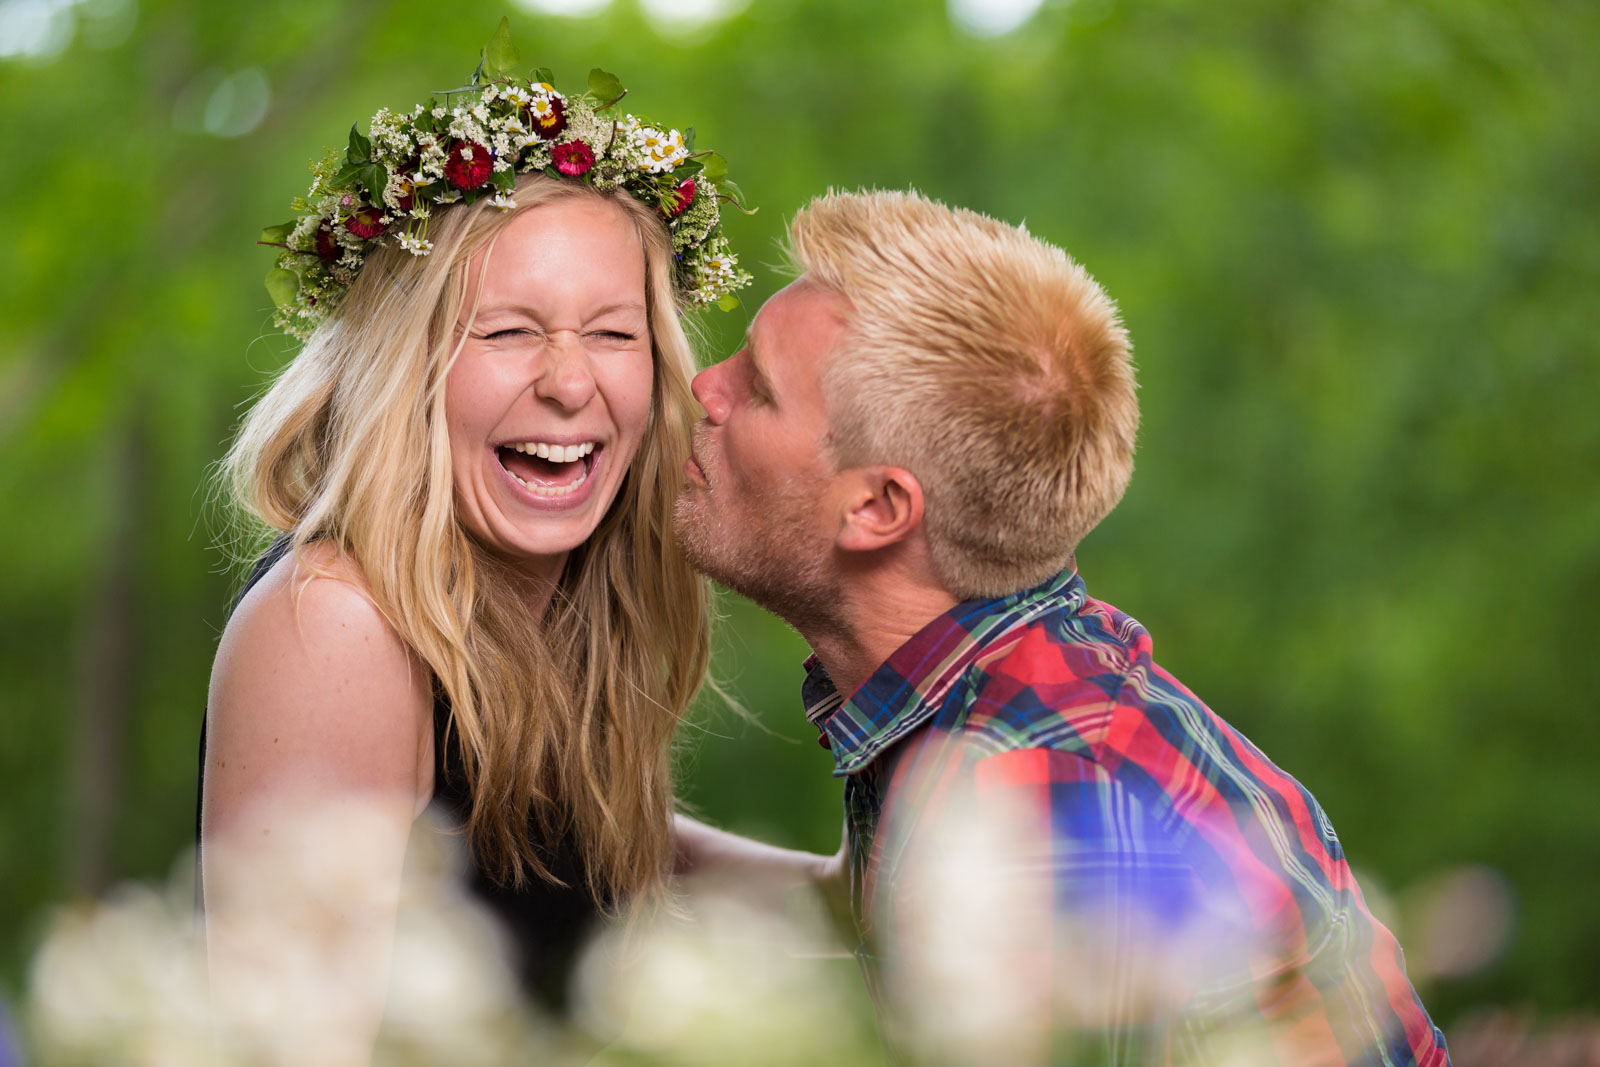 photo tips, portrait photography, midsummer, sweden - fototips, portrattfotografering, midsommar, sverige